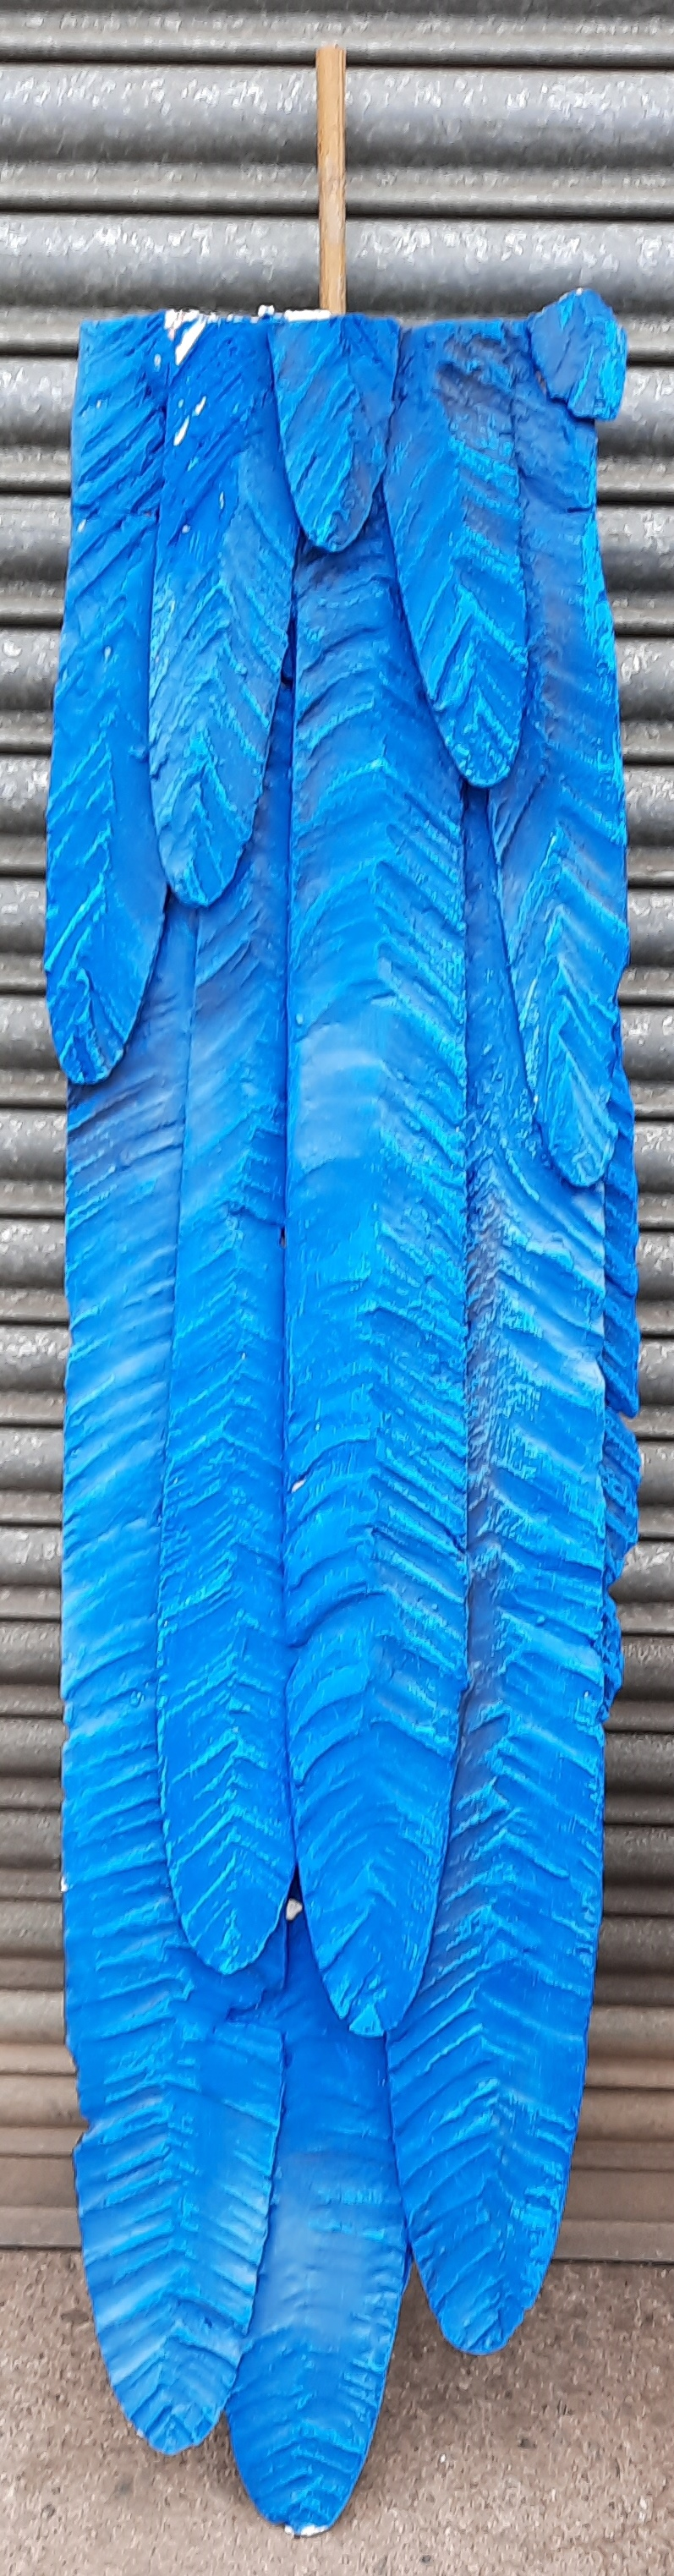 MONTY PYTHON THEMED ' DEAD PARROT SKETCH ' OVERSIZE PROP REPLICA - Image 5 of 9